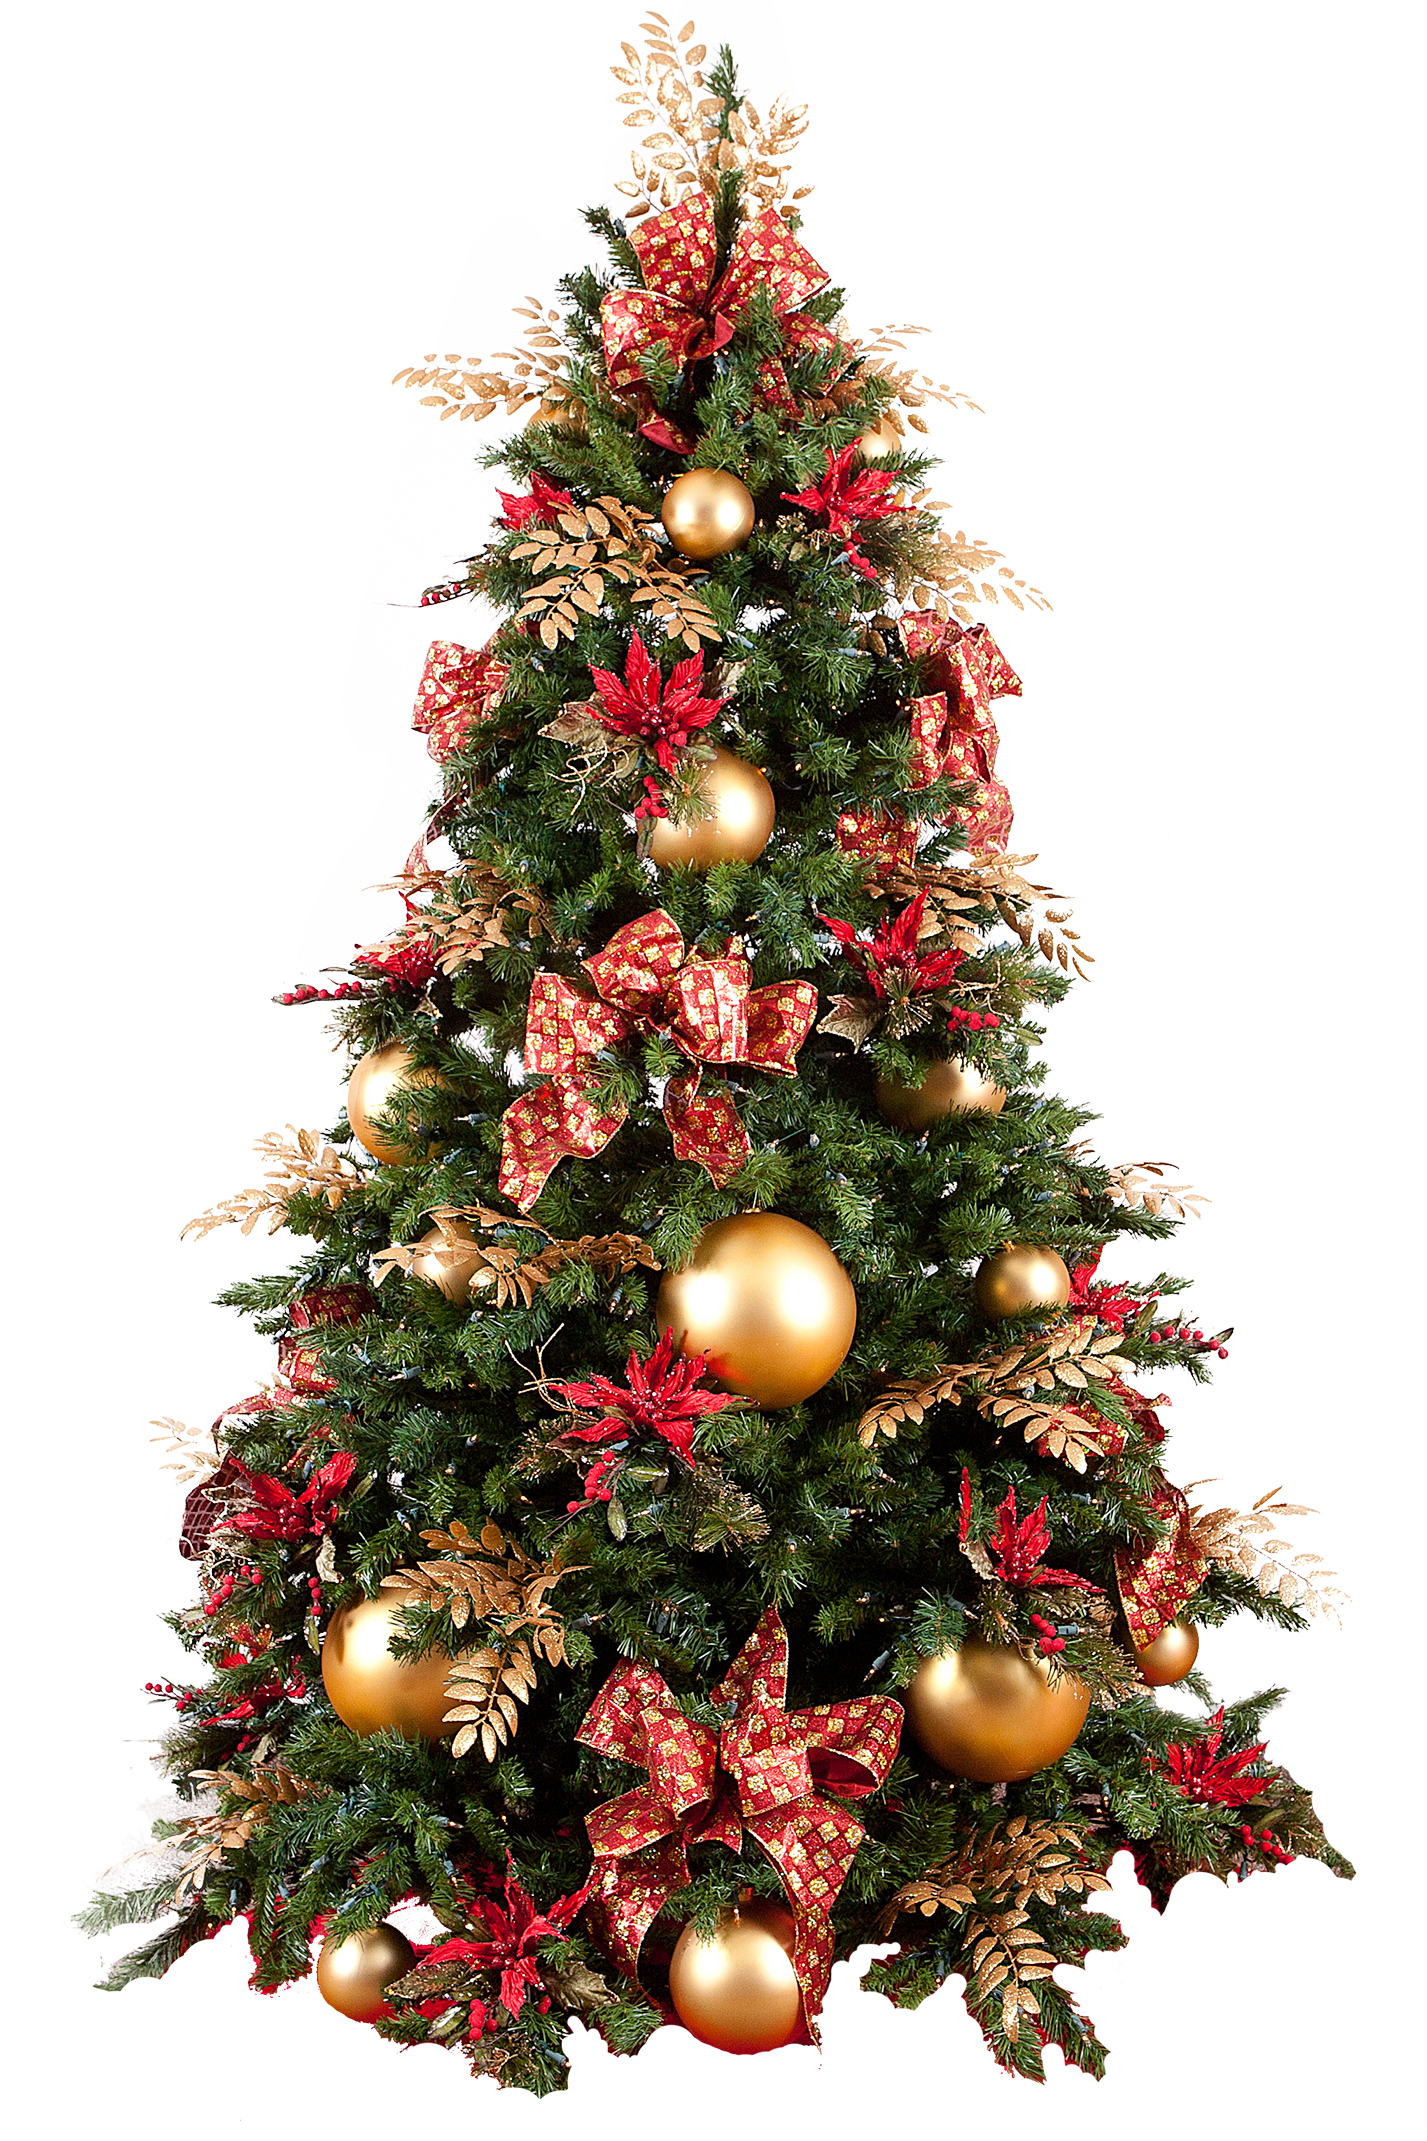 Christmas Tree With Presents Png Image Colorful Christmas Tree Christmas Tree Decorations Elegant Christmas Trees